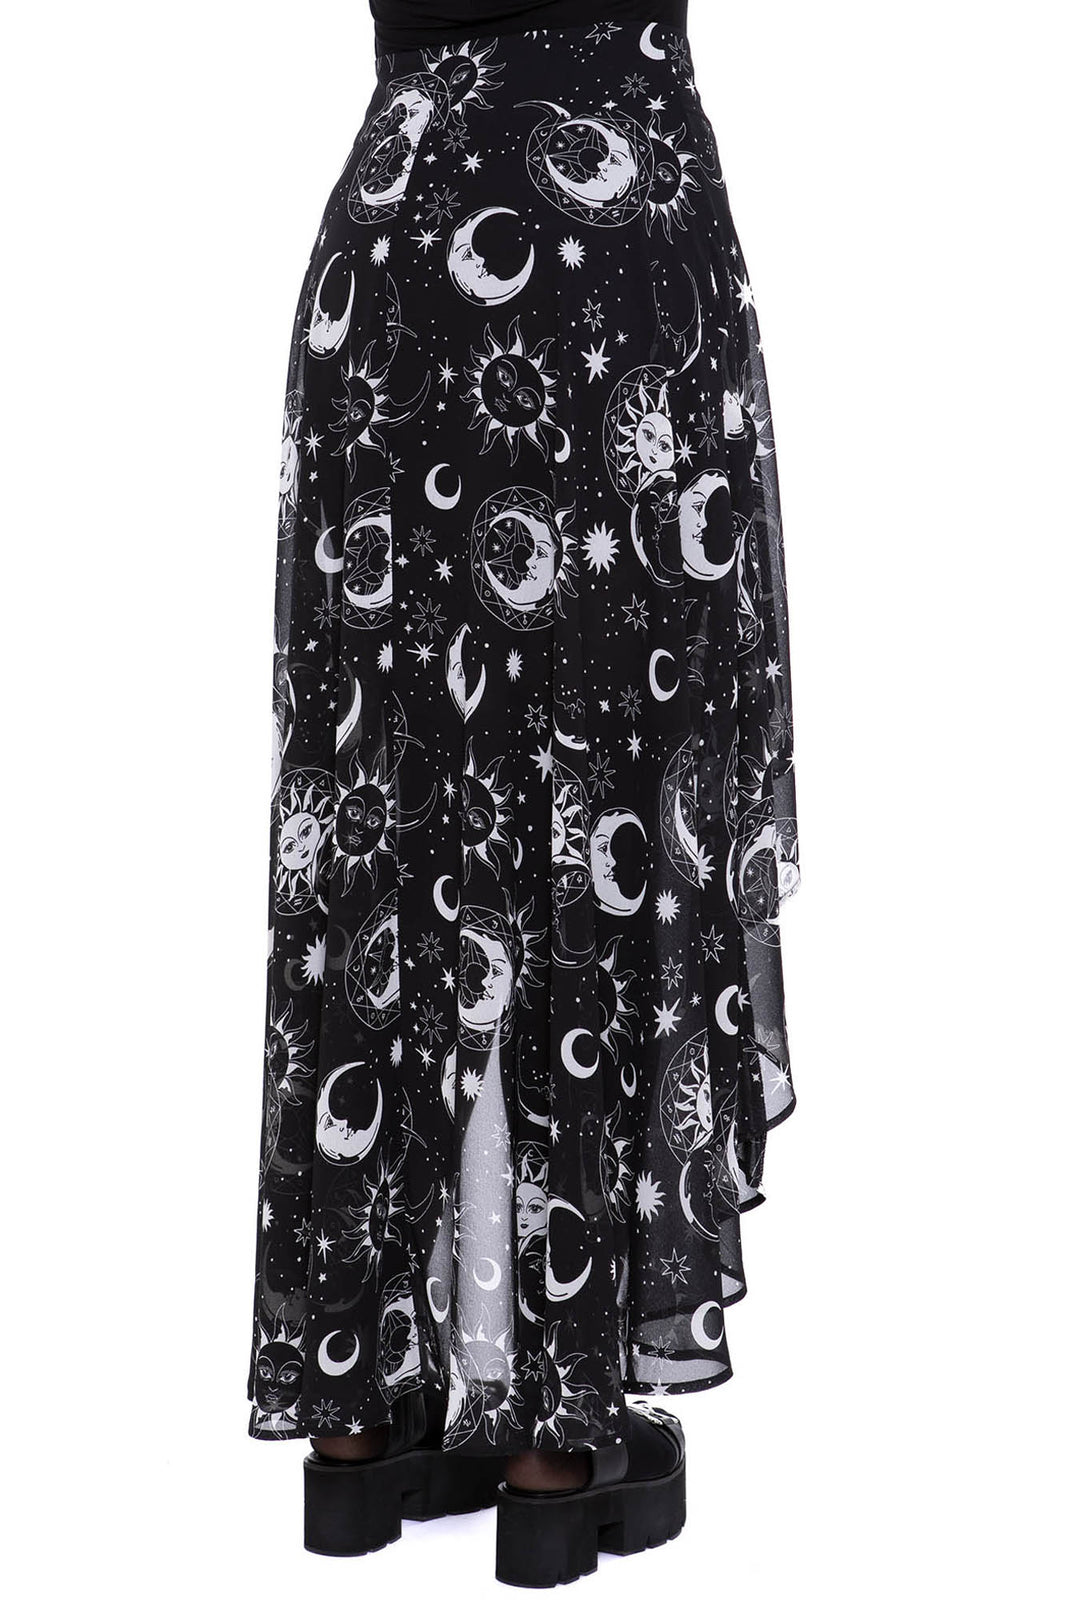 Astral Light Maxi Skirt